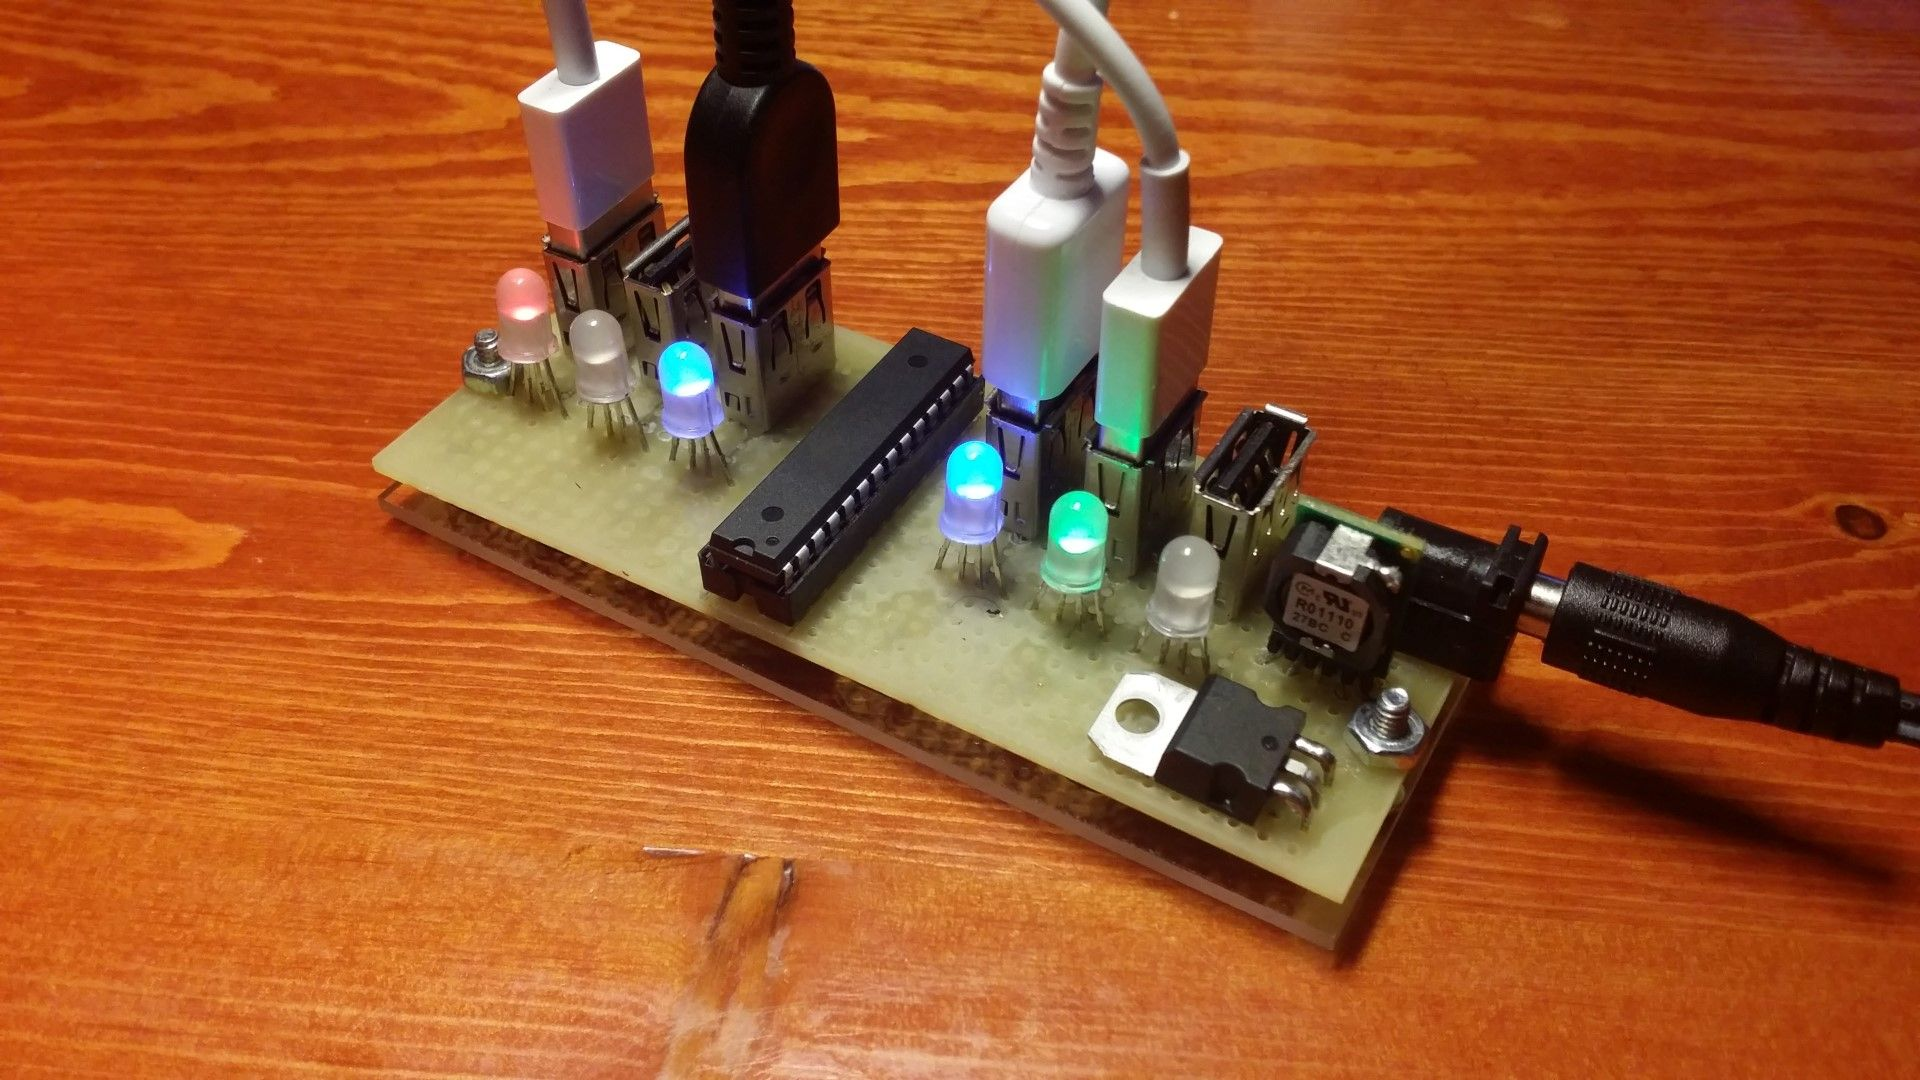 Simple 6x Usb Charger With Current Monitor Electro Pinterest More Electrical Circuits And Devices Are This Is A 6 Port Device Individual On Each The Charging Indicated Using Rgb Leds